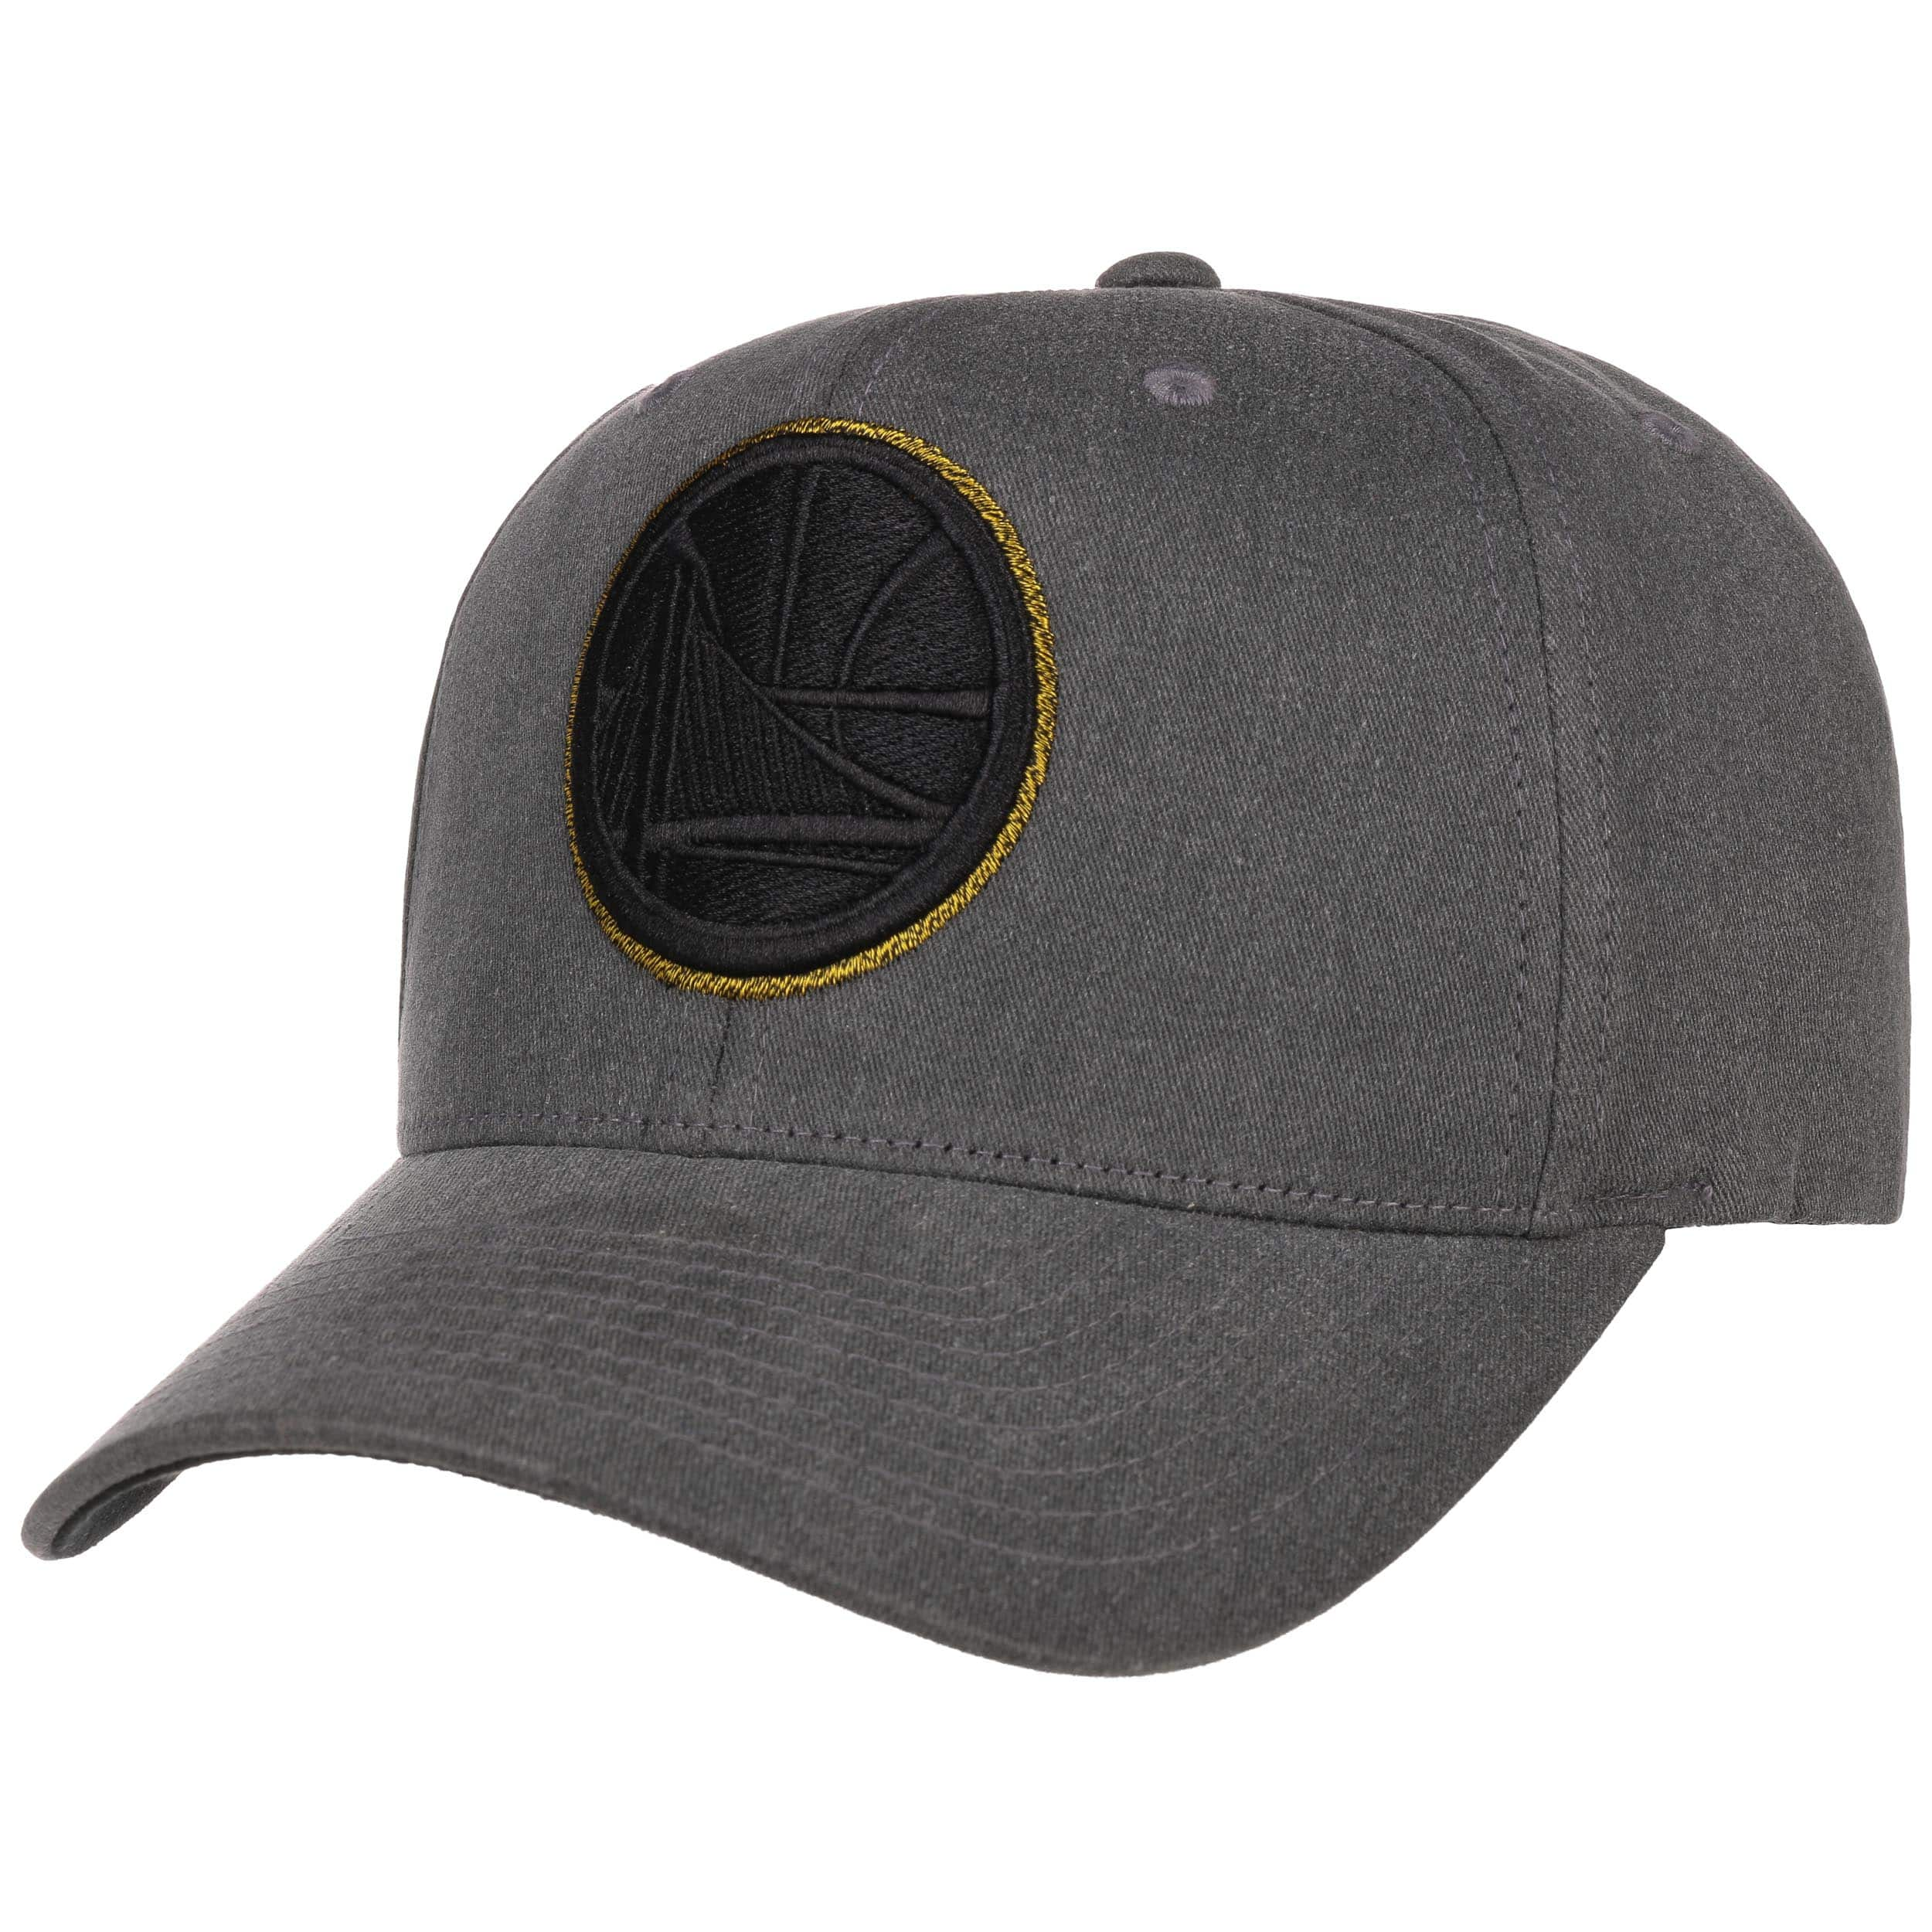 5f770119e NBA Washed 110 Warriors Cap by Mitchell & Ness